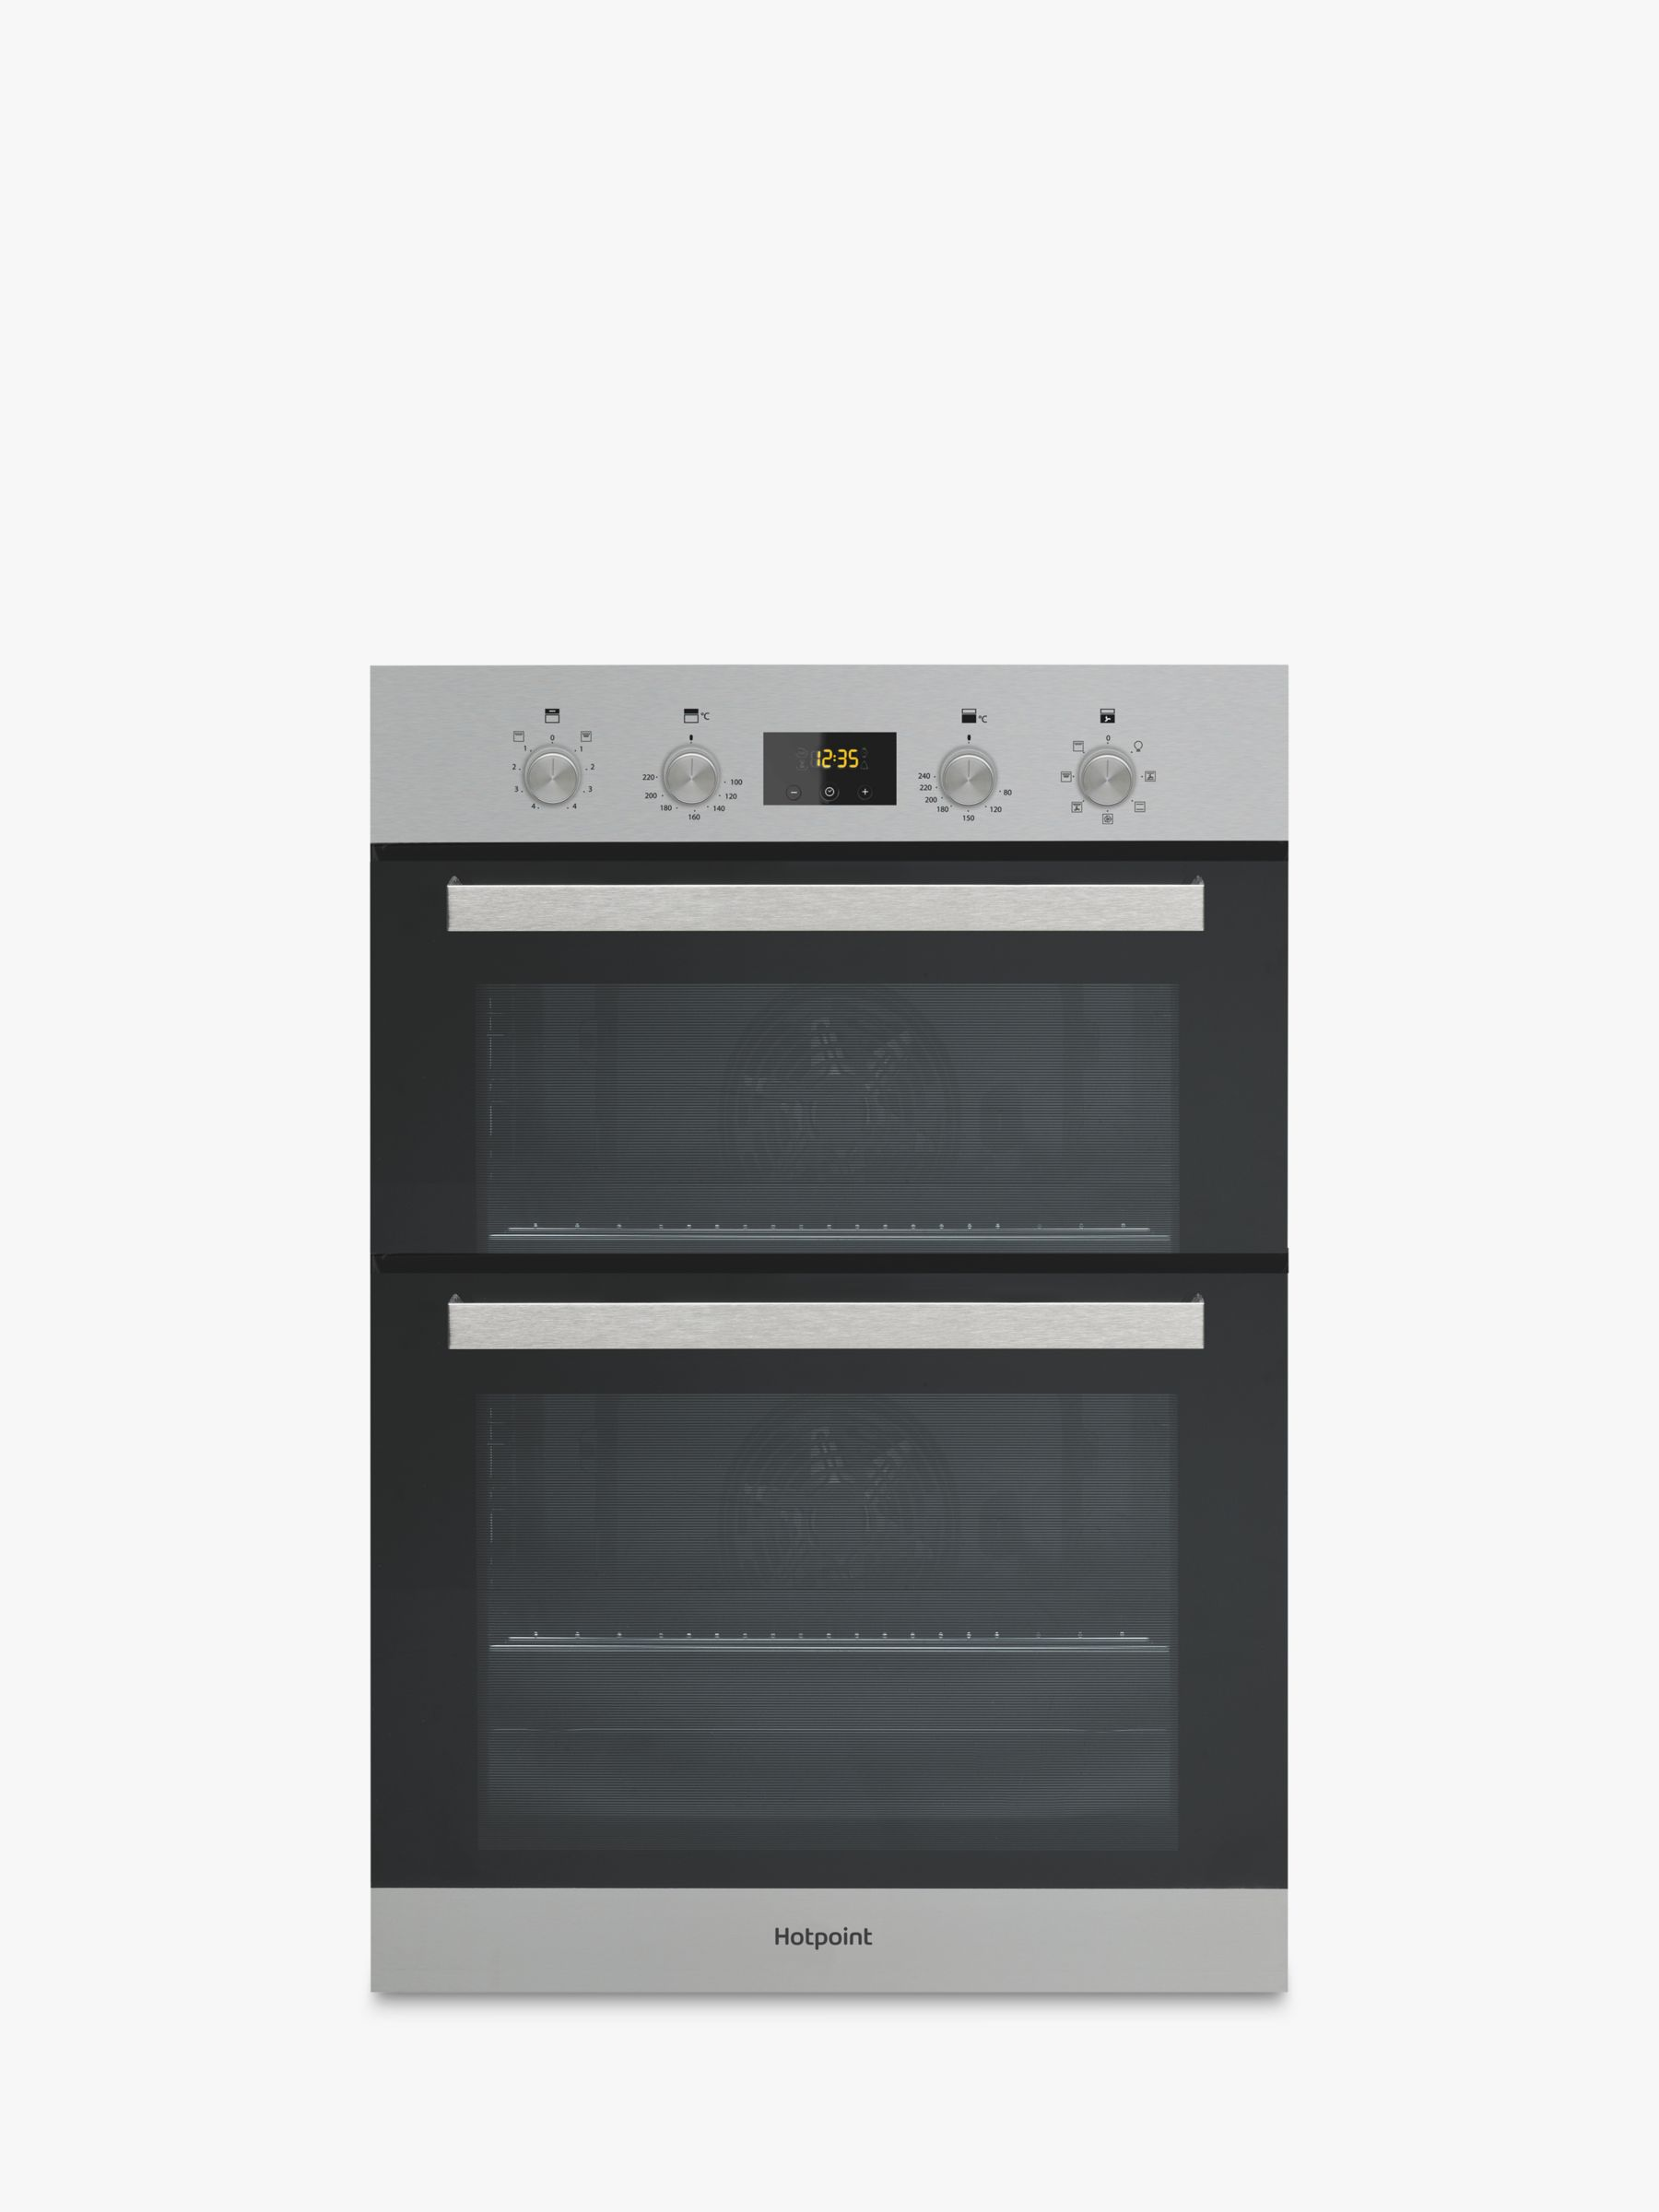 Hotpoint Hotpoint DKD3841 Built-In Electric Double Oven, Inox